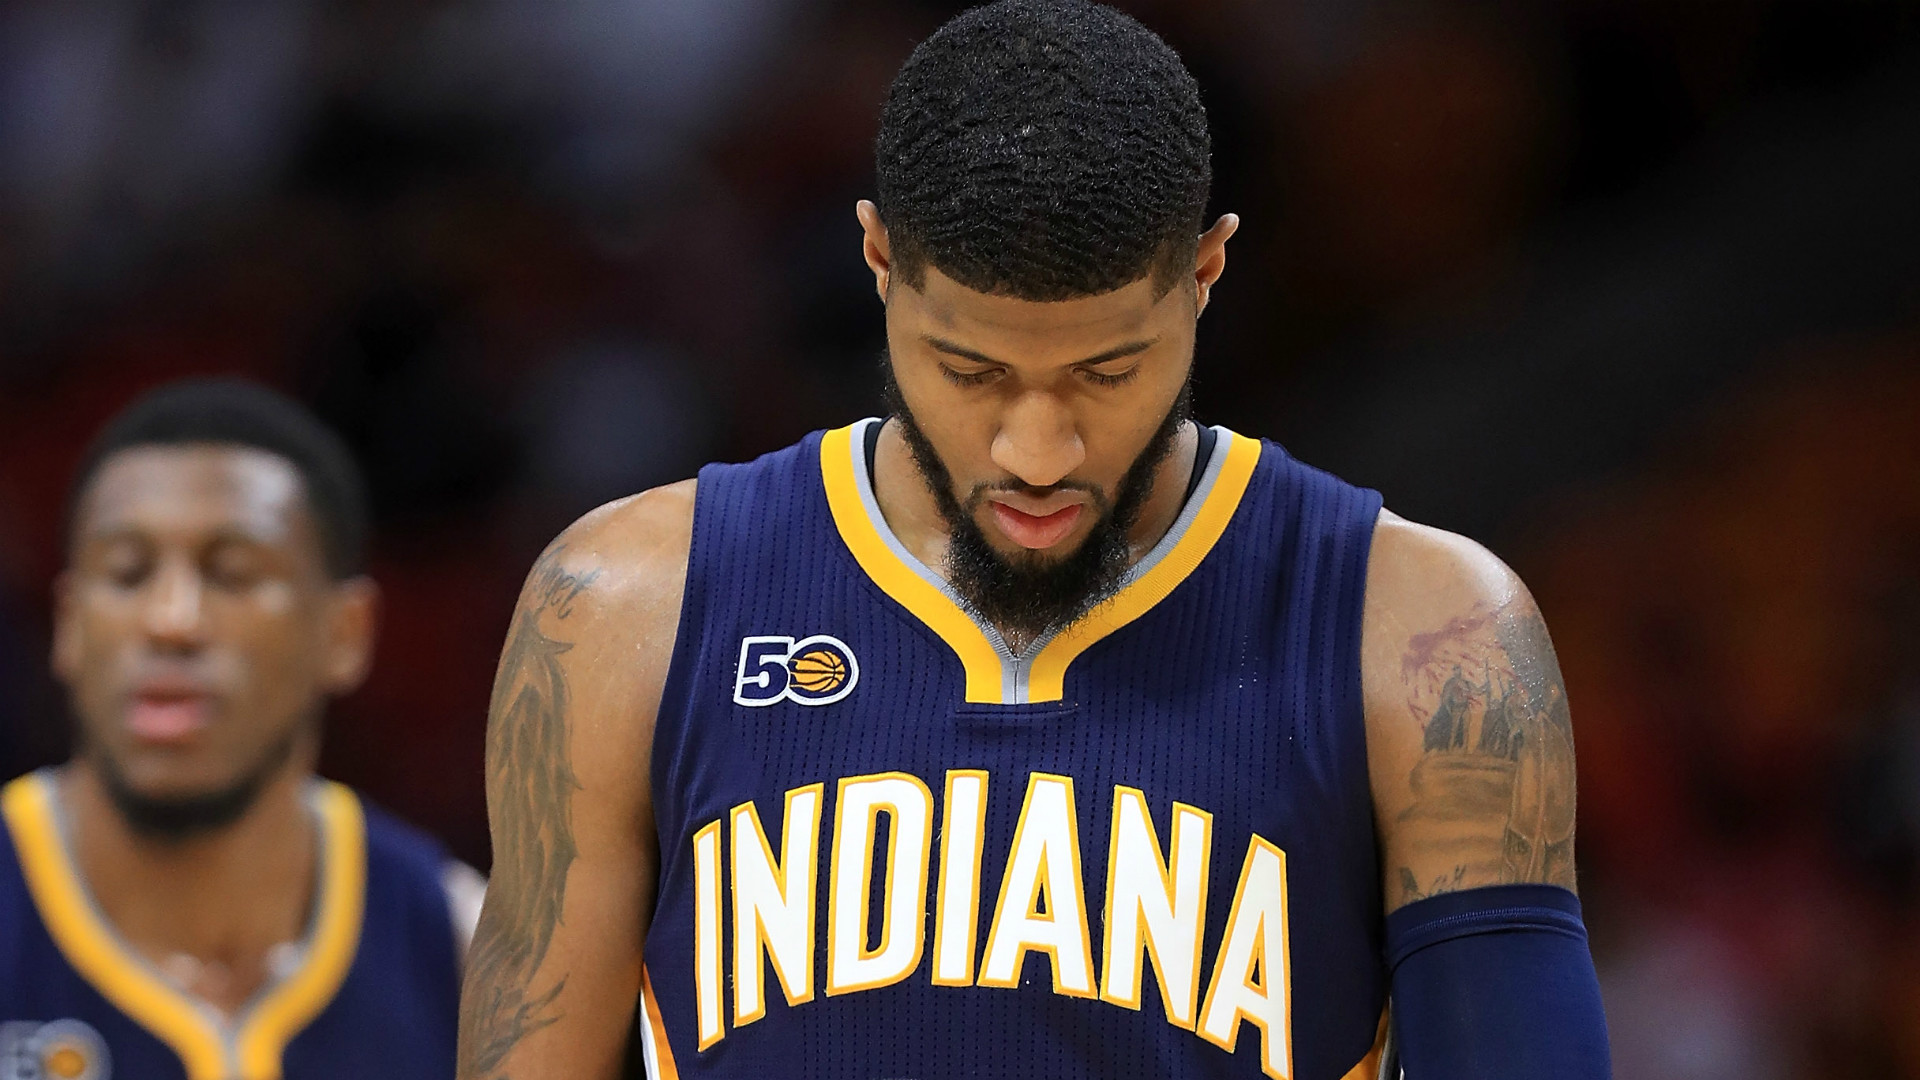 NBA playoffs: Pacers' Paul George fires back at media's 'complete ignorance'